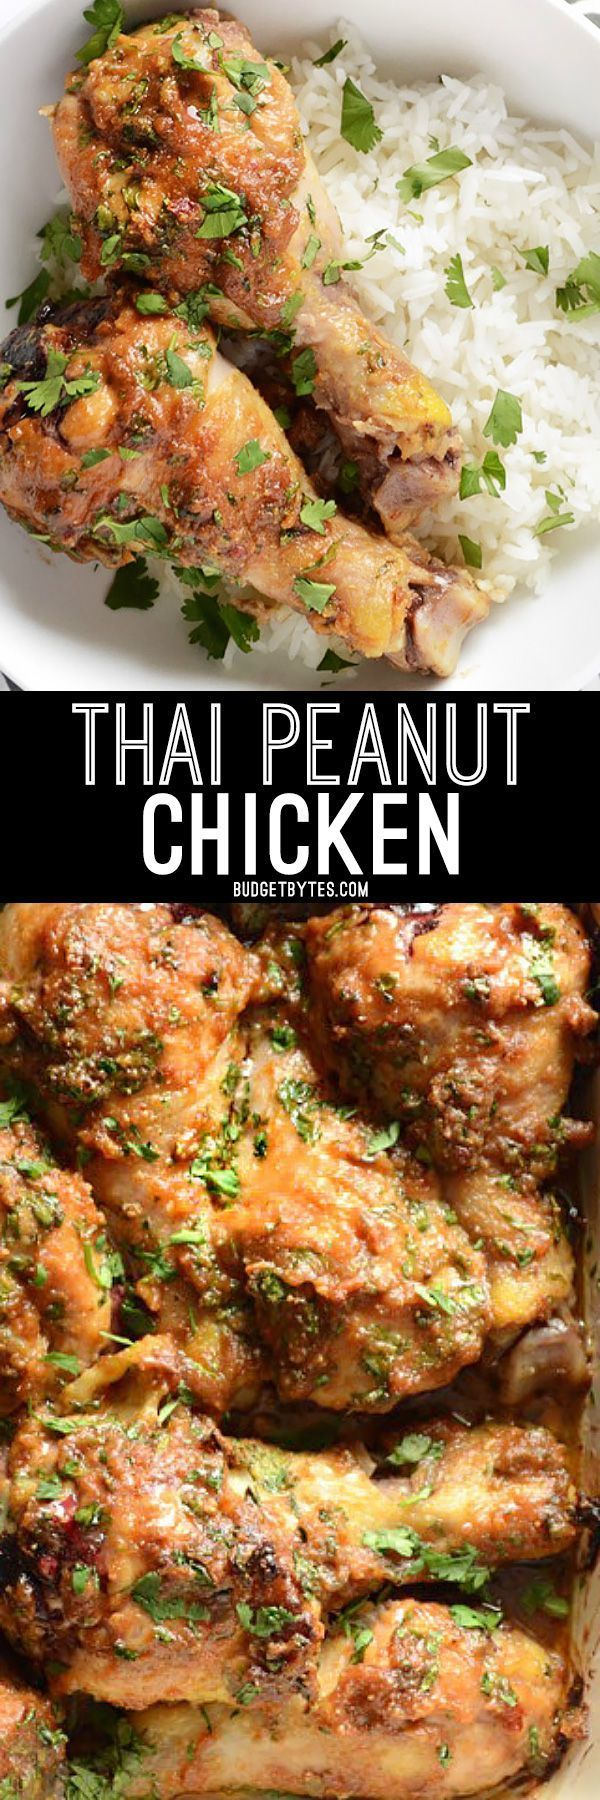 Inexpensive chicken drumsticks are transformed into an exotic and flavorful Thai Peanut Chicken thanks to a simple Thai Peanut Sauce. Step by step photos.